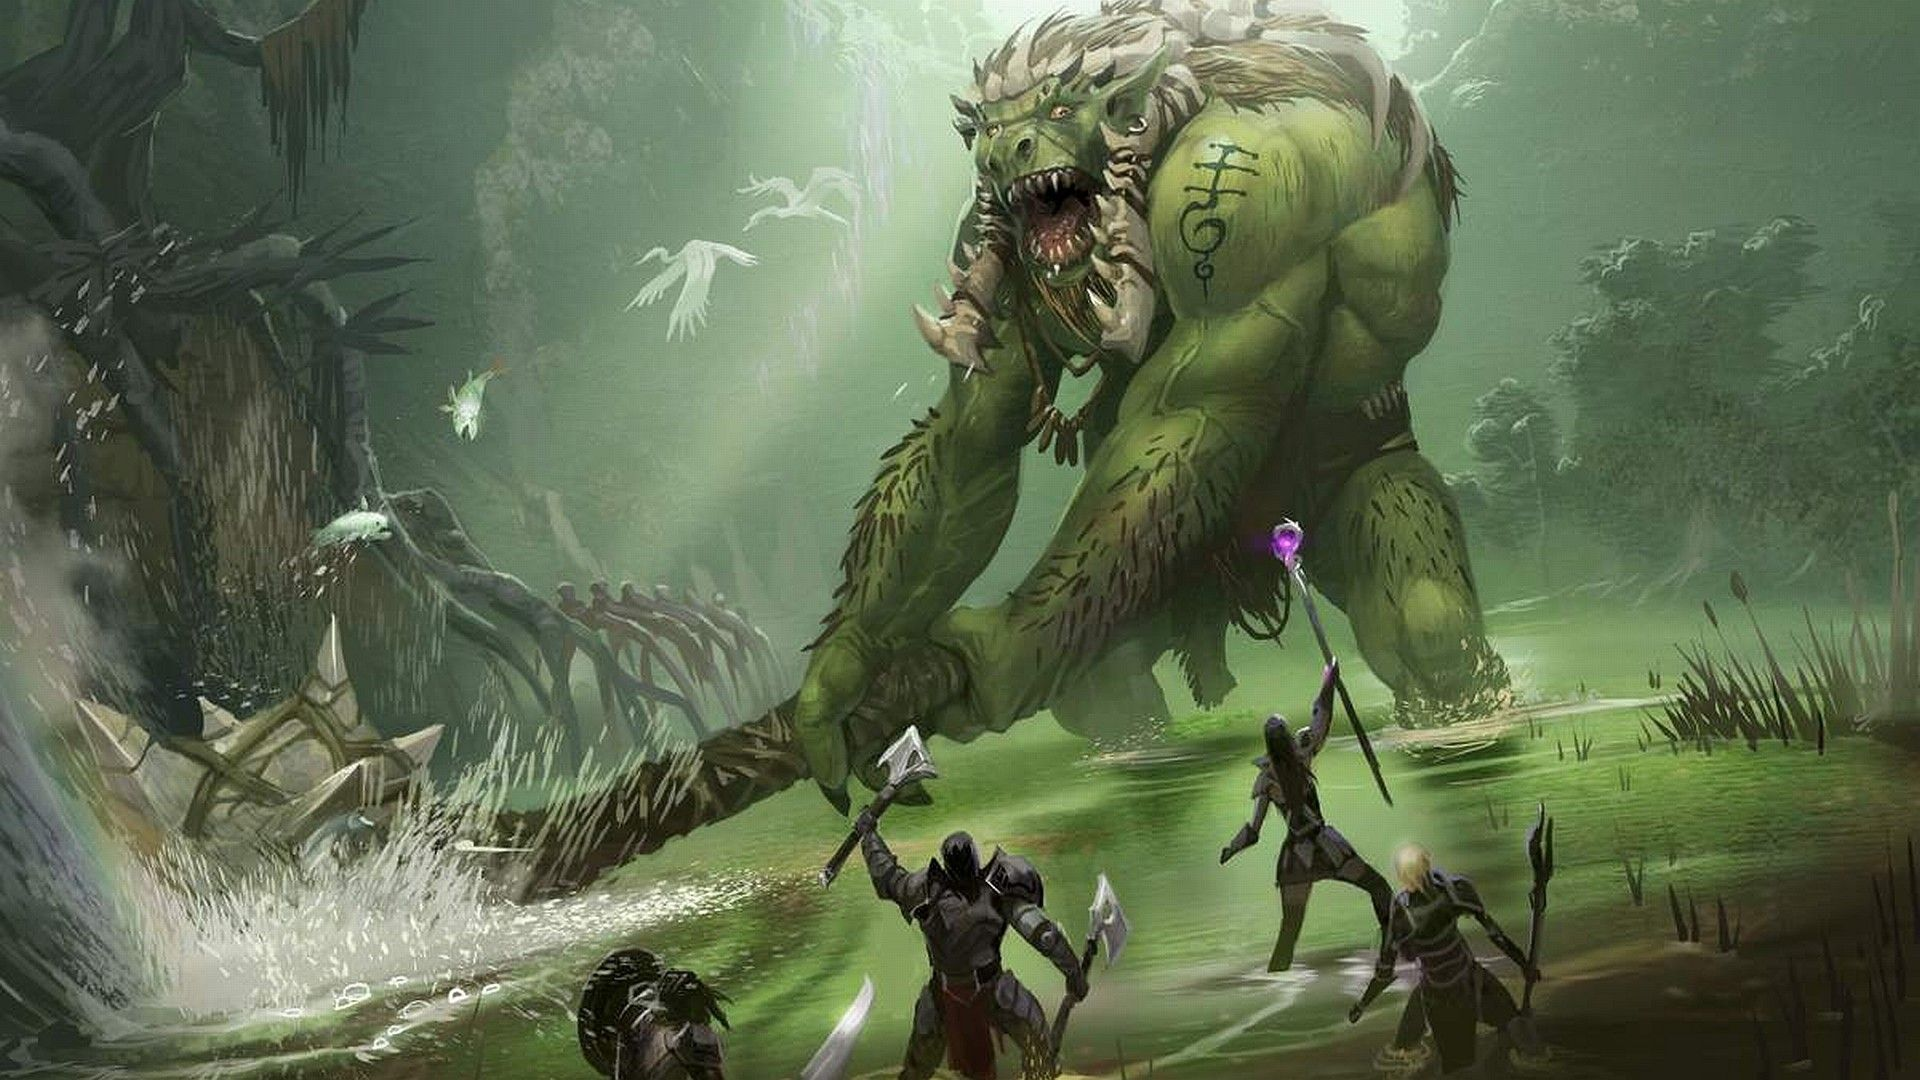 fantasy creatures Creatures, spirits, demons,  names of species in fantasy fiction list of creatures based on mythology, legends, fairy tales, or classical literature.